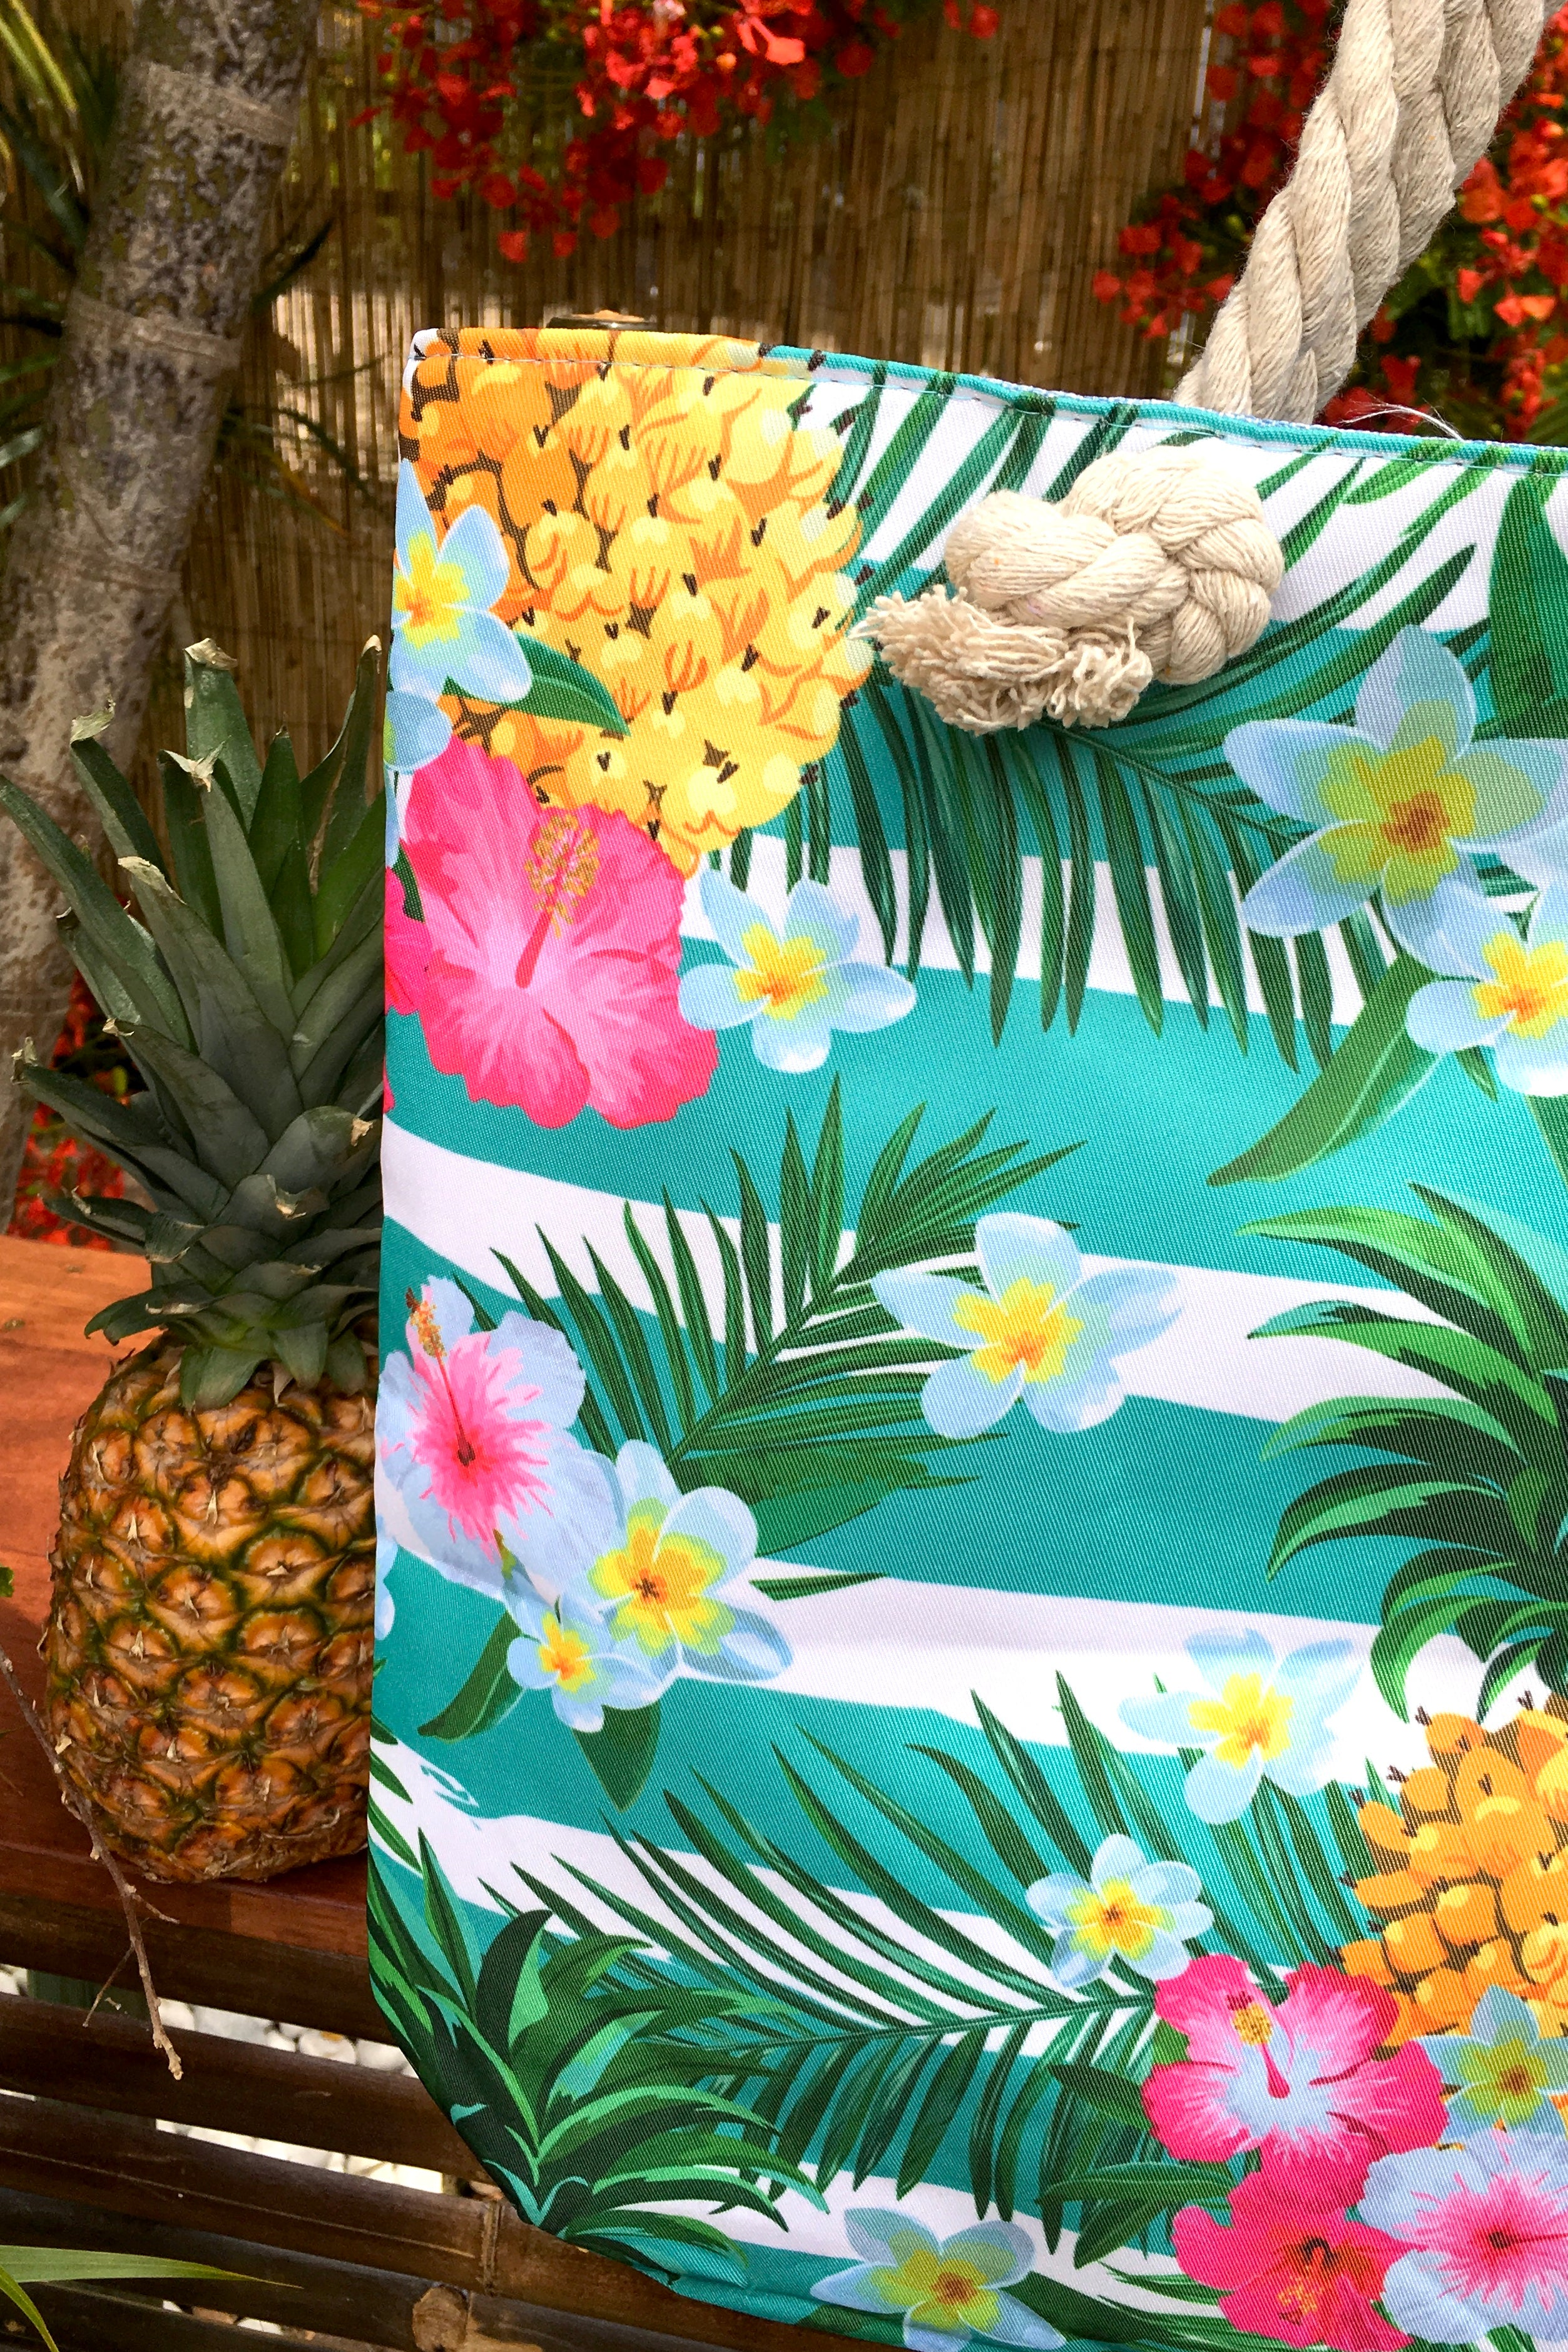 Yeah Canvas Beach Bag Fruit and Flowers